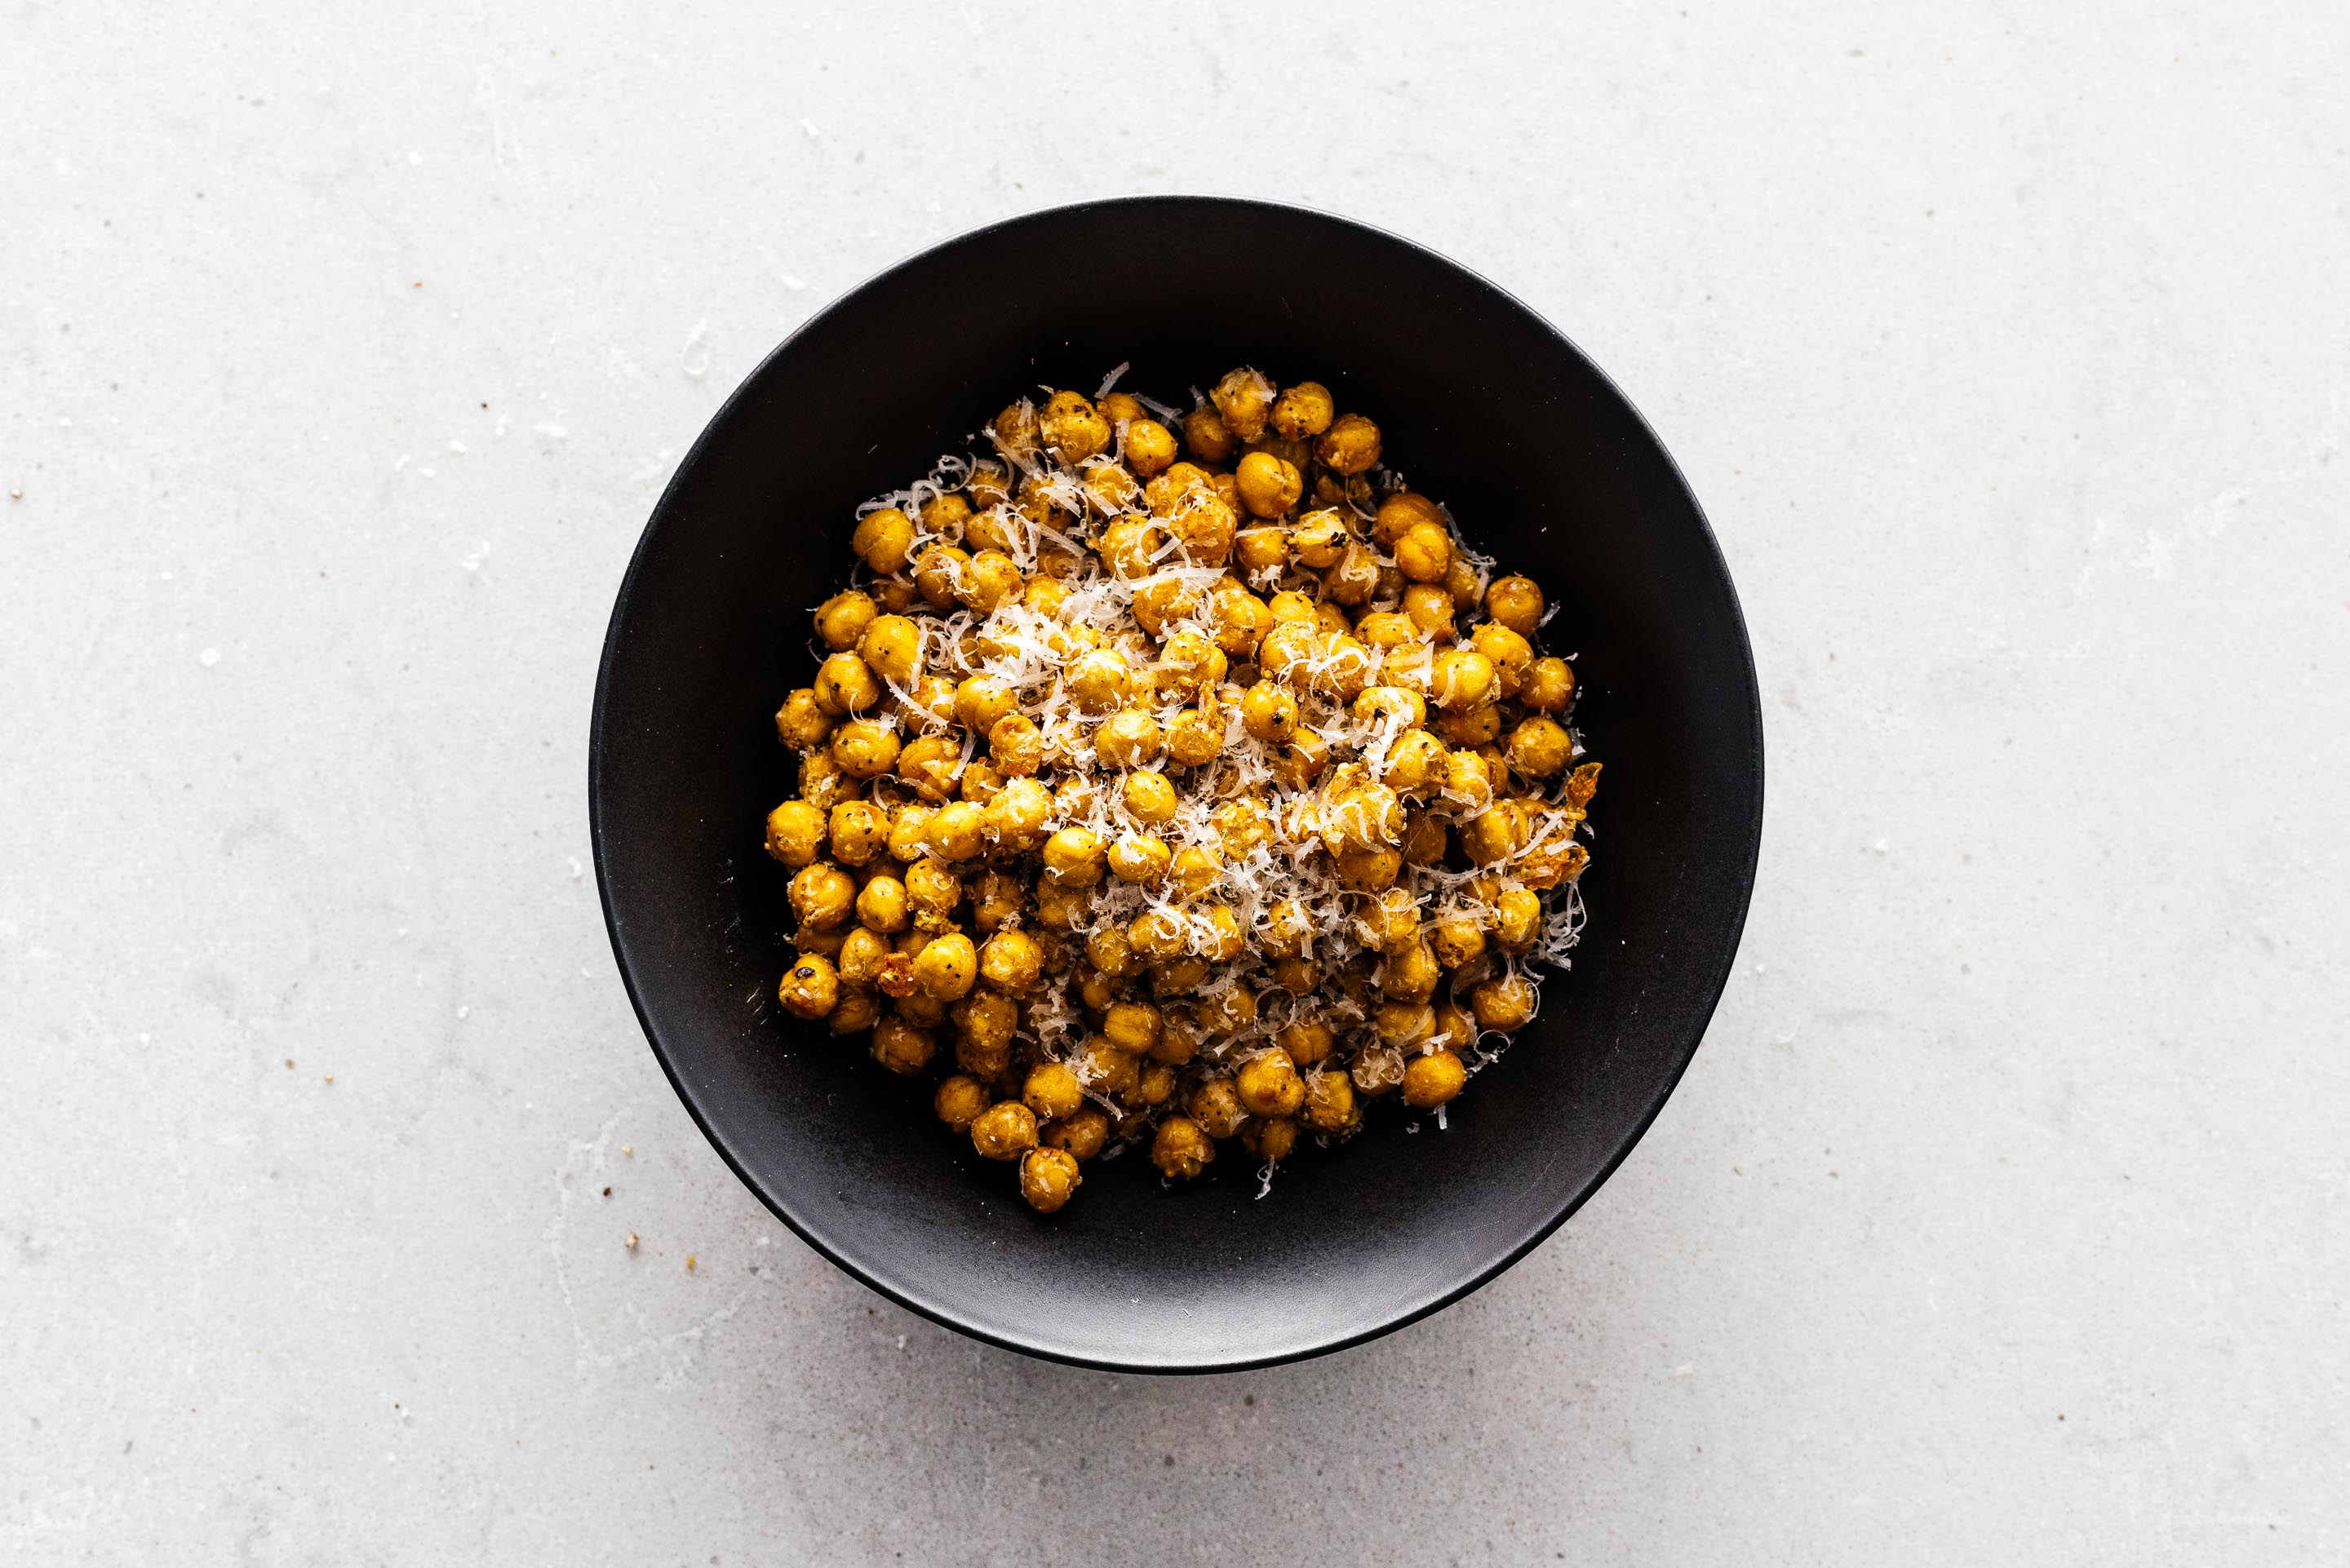 Oven Roasted or Air Fryer Crispy Cacio e Pepe Chickpeas